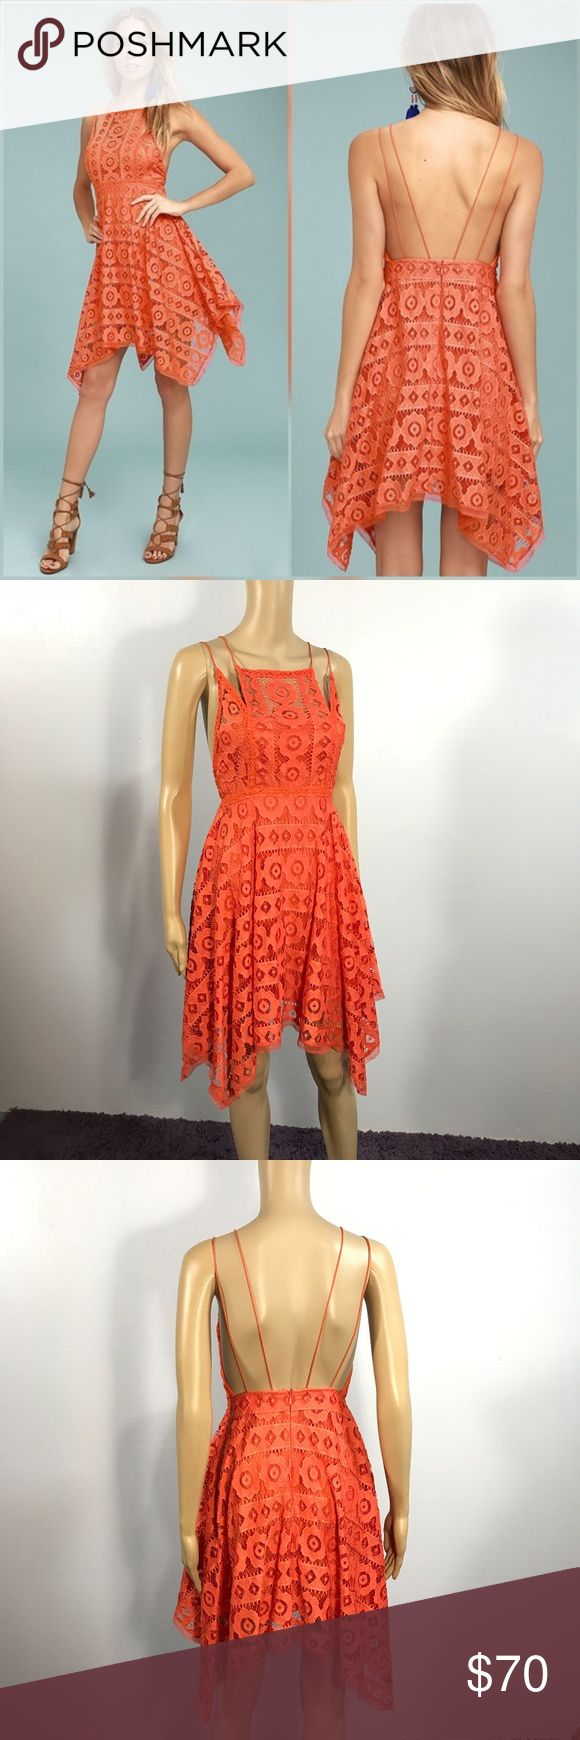 NWT Free People Just like Honey Mini Dress sz 0 Perfect condition, brand new with tags! Style No. 41558305 ; Color Code: So pretty and femme, this lacey mini dress features an asymmetrical hem with a unique high neckline. Lined Hidden back zipper closure Fit-and-flare shape The tag says it's red, but it is a more on the orange side Free People Dresses Mini